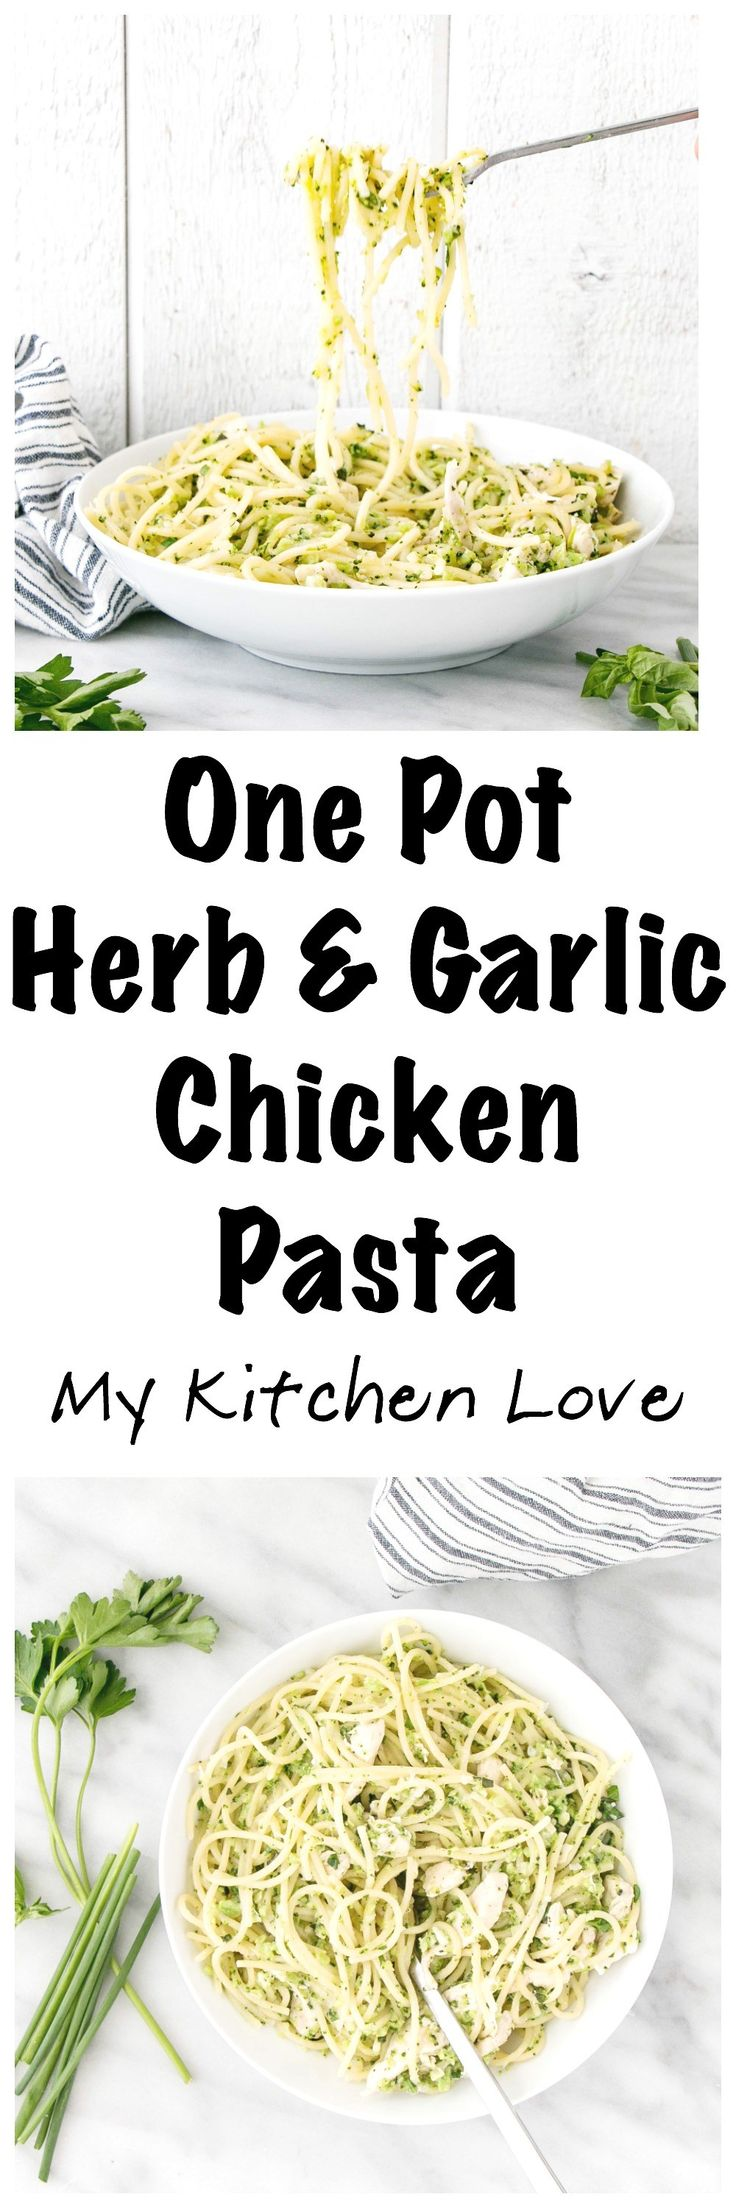 One Pot Herb and Garlic Chicken Pasta is packed with simple but flavourful ingredients the whole family will love! Kid-friendly, one pot and made in under 30 minutes! #kidfriendly #pasta #comfortfood #onepot